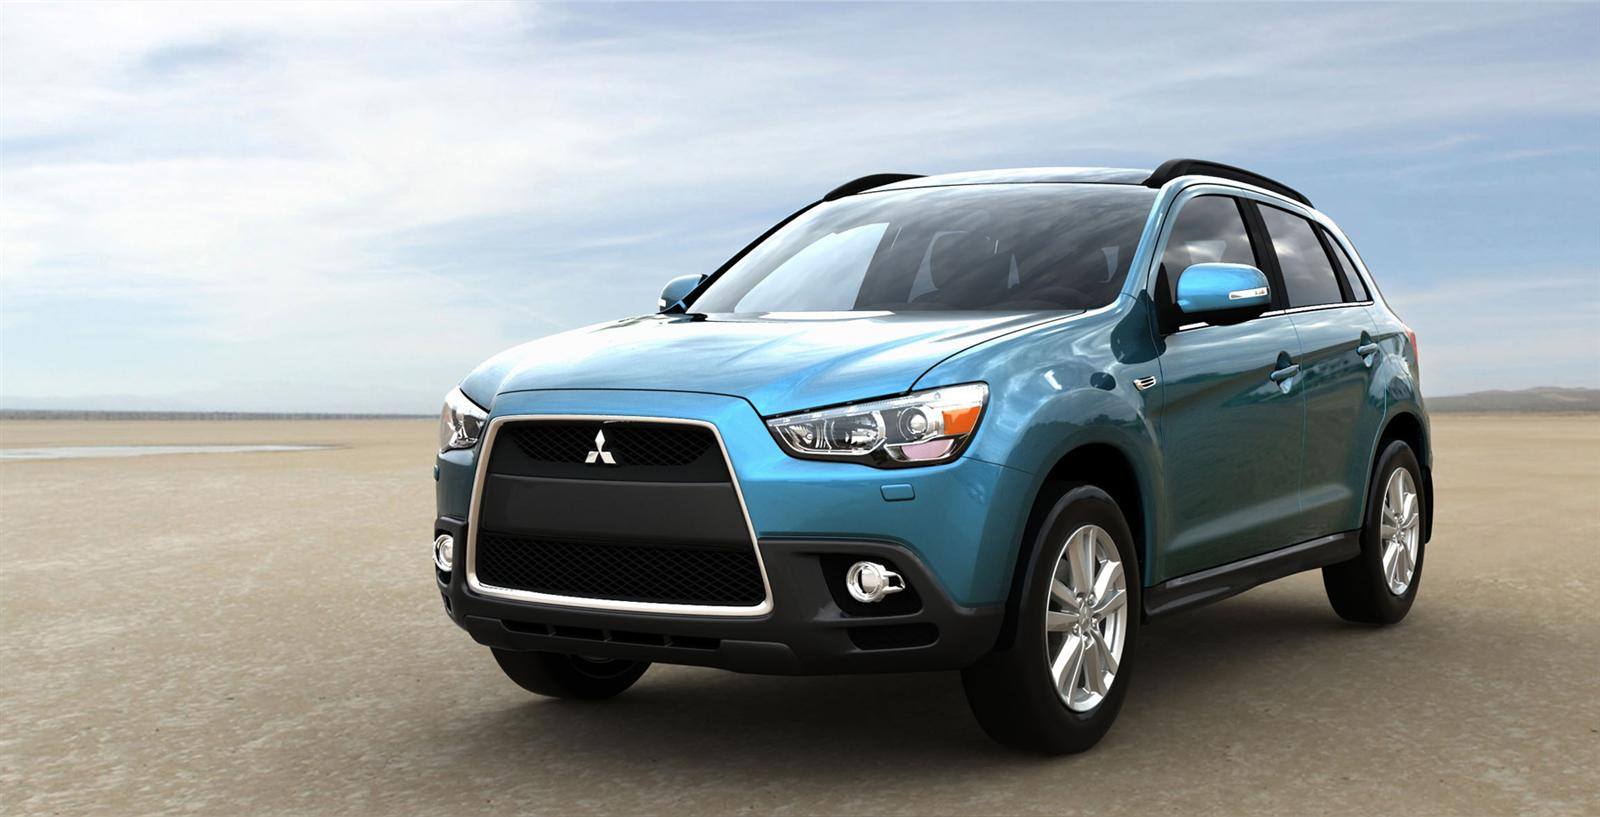 The Mitsubishi ASX combines SUV styling with handy compactness.